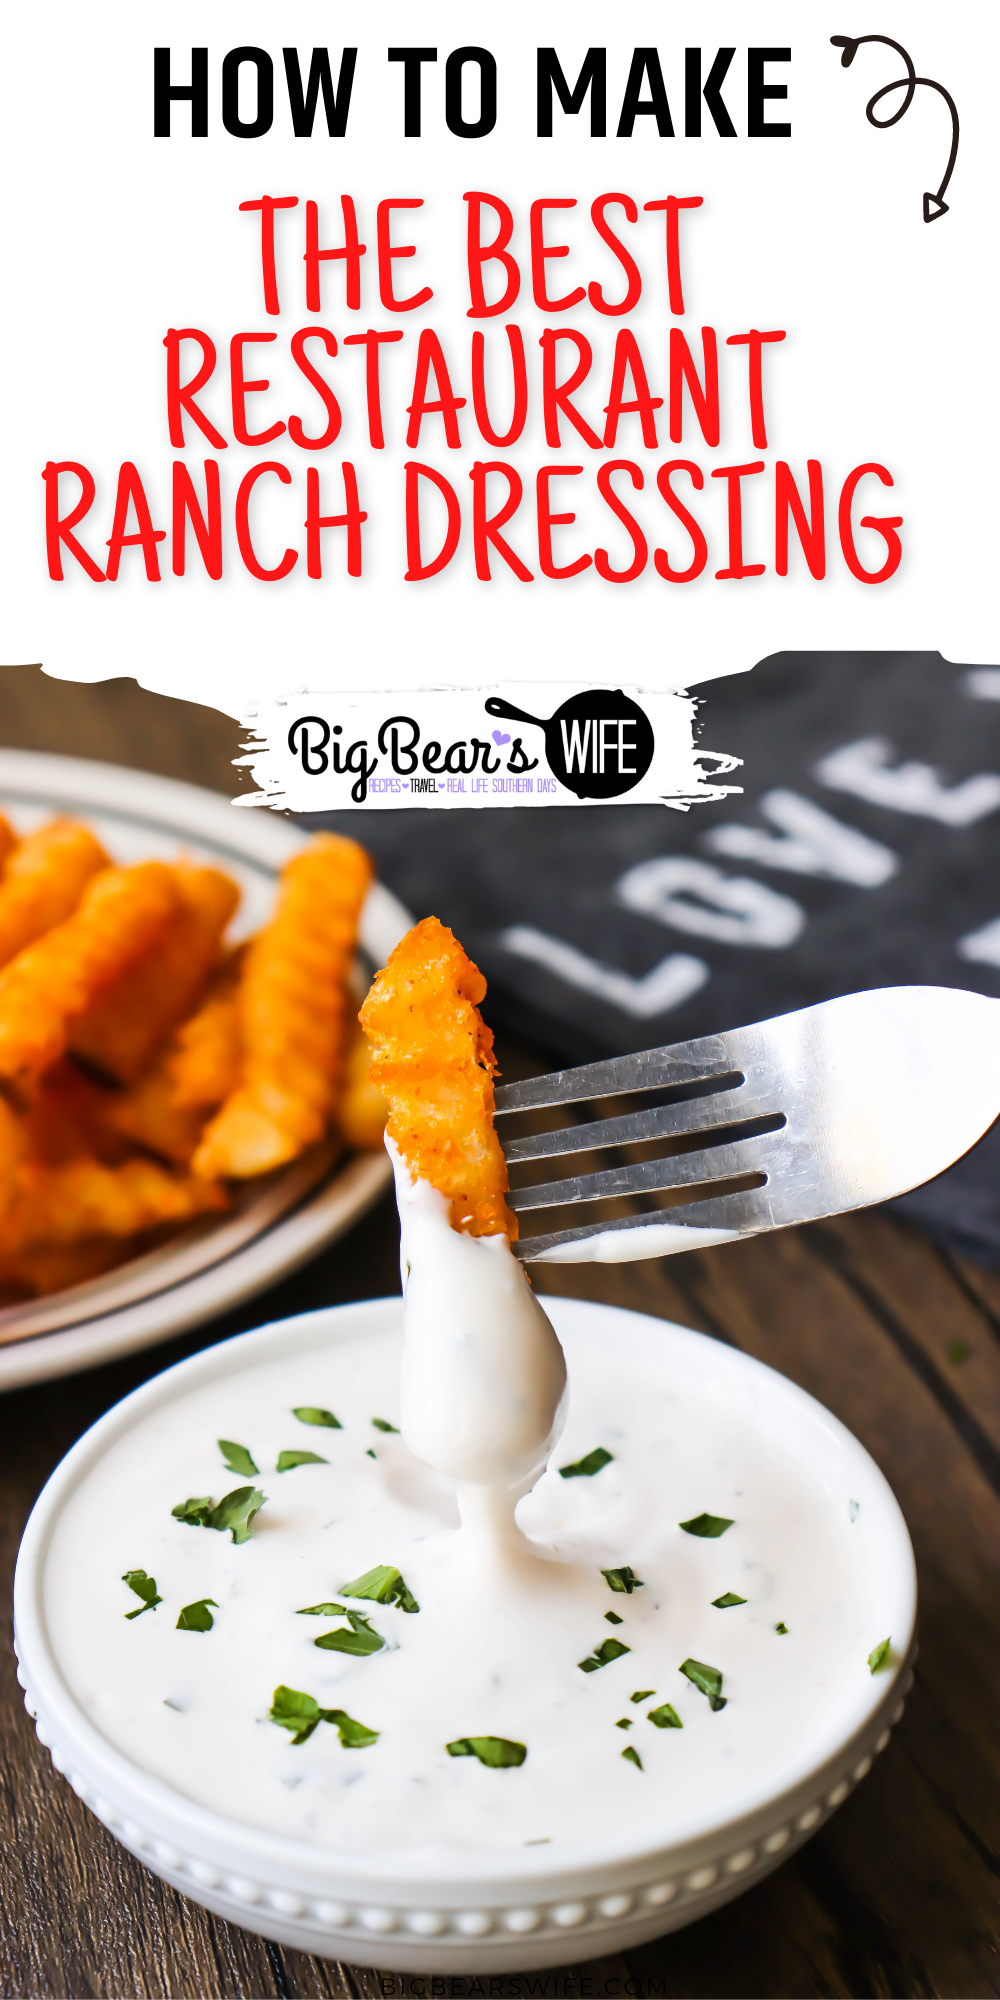 This CopycatRockola Ranch Dressing Recipe is pretty much 100% like the restaurant ranch dressing that was served at Rockola Cafe! It's by far the BEST ranch ever! via @bigbearswife